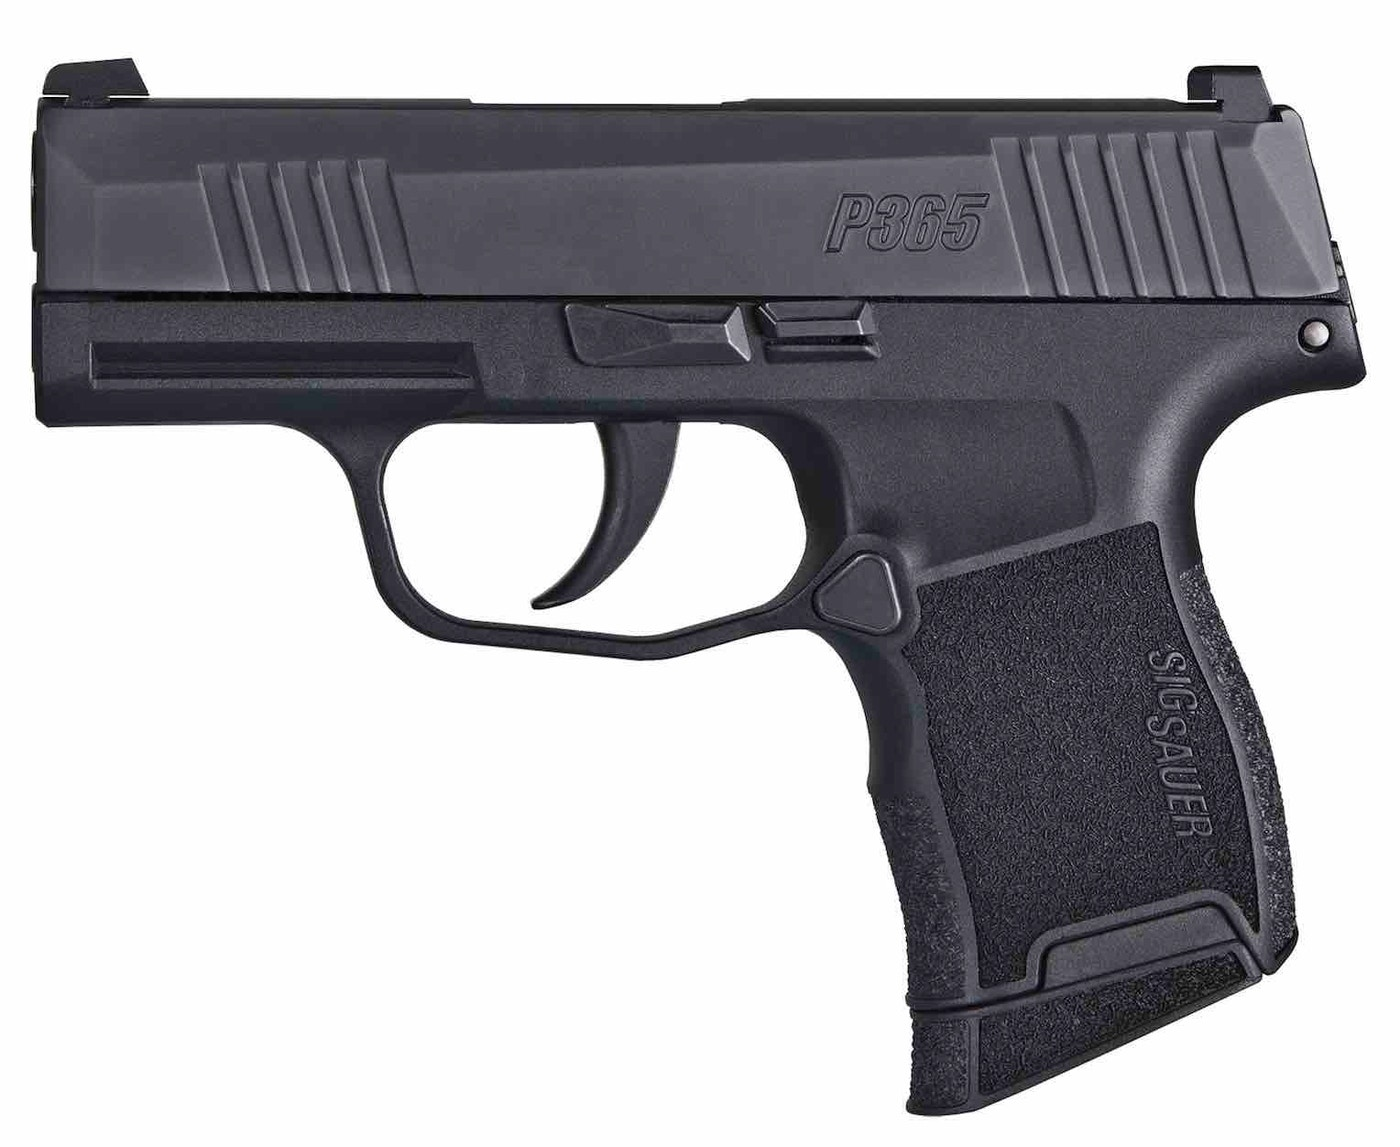 Demand High for New Pocket-Sized SIG Sauer… | Shooting